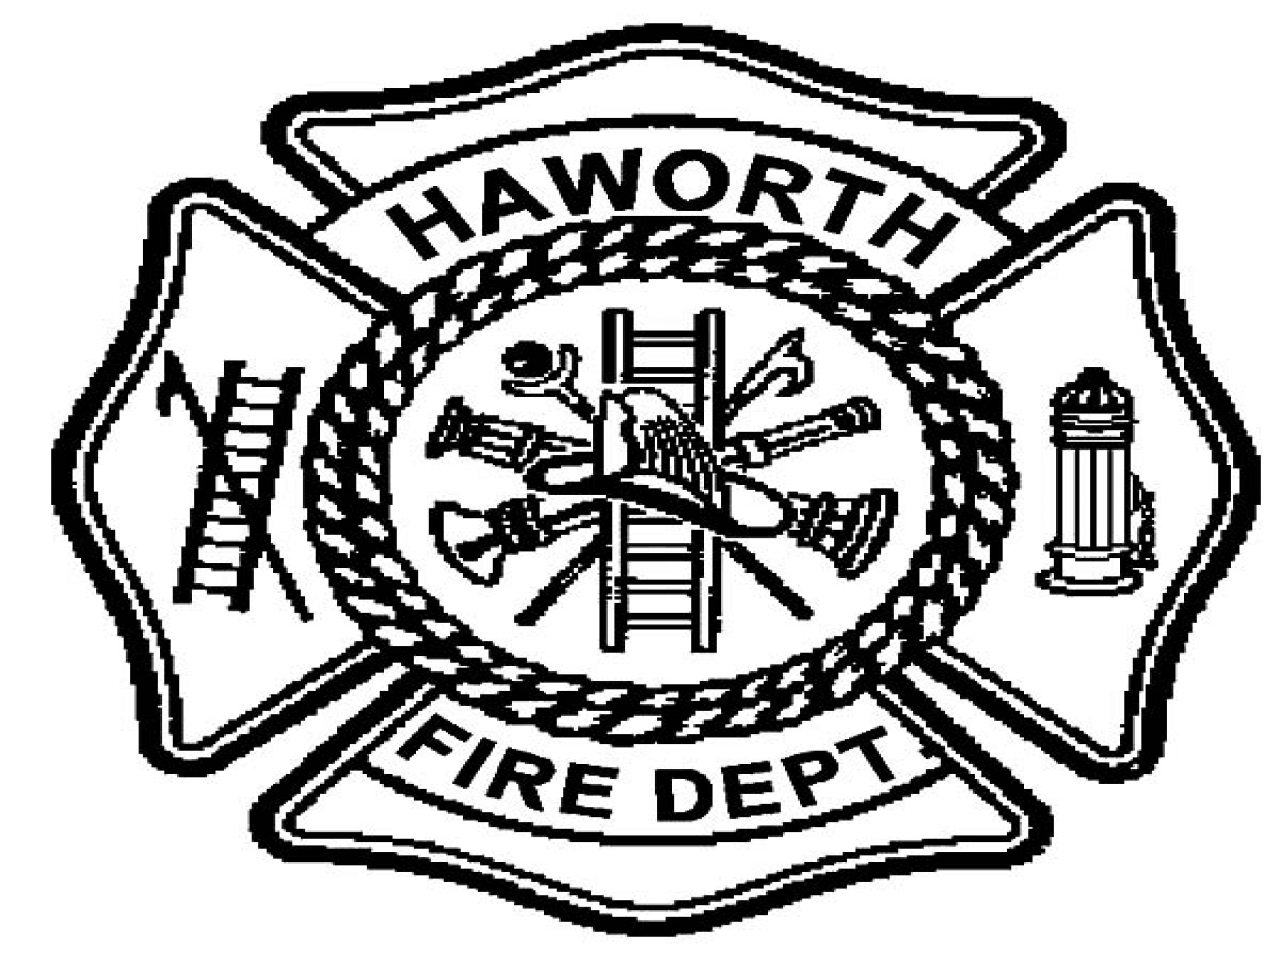 1280x960 Fire Dept Coloring Pages Haworth Maltese Cross